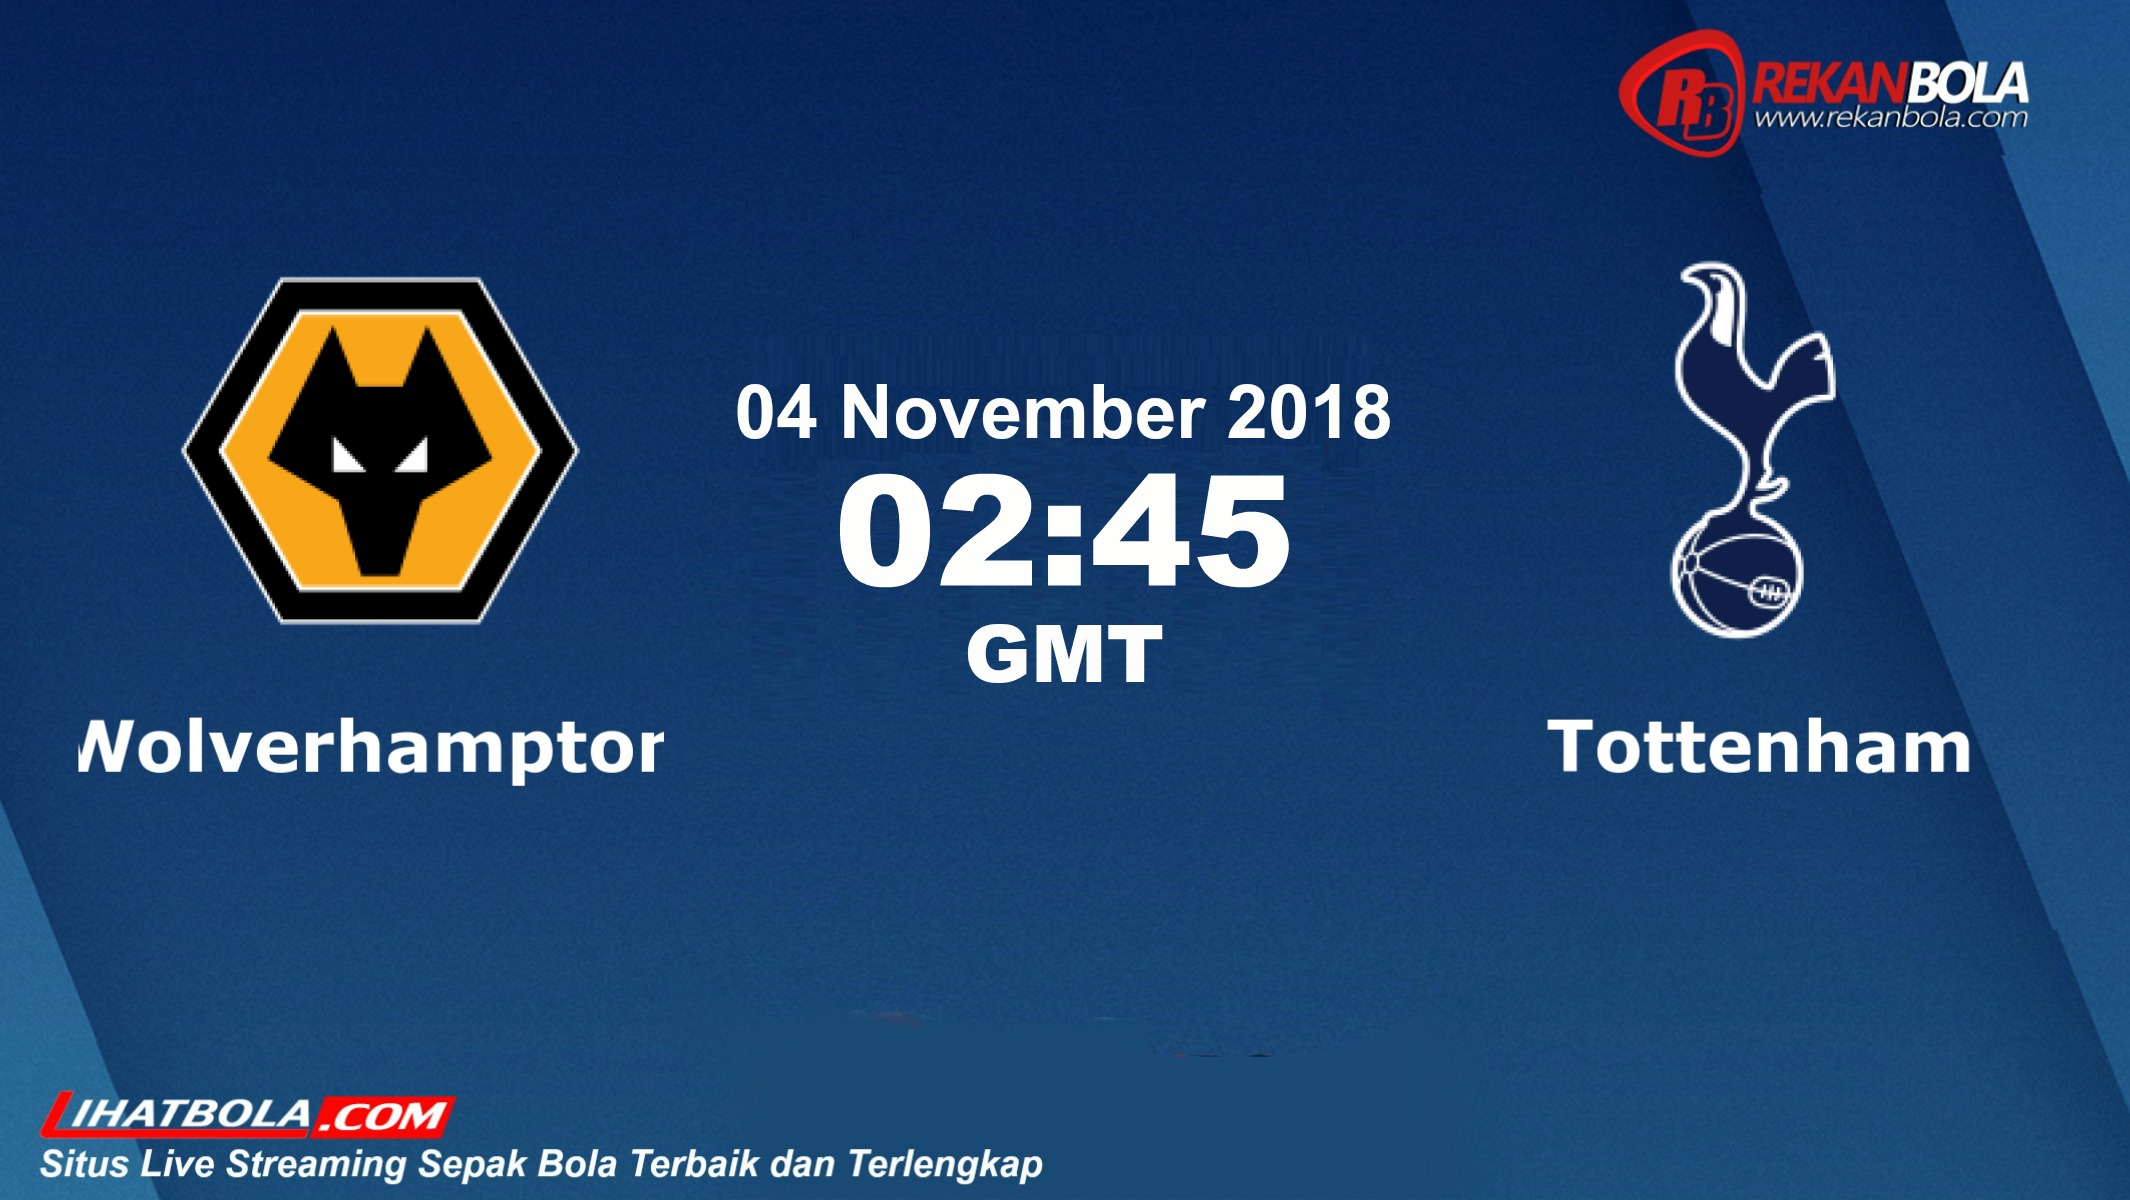 Nonton Siaran Live Streaming Wolves Vs Tottenham 04 November 2018